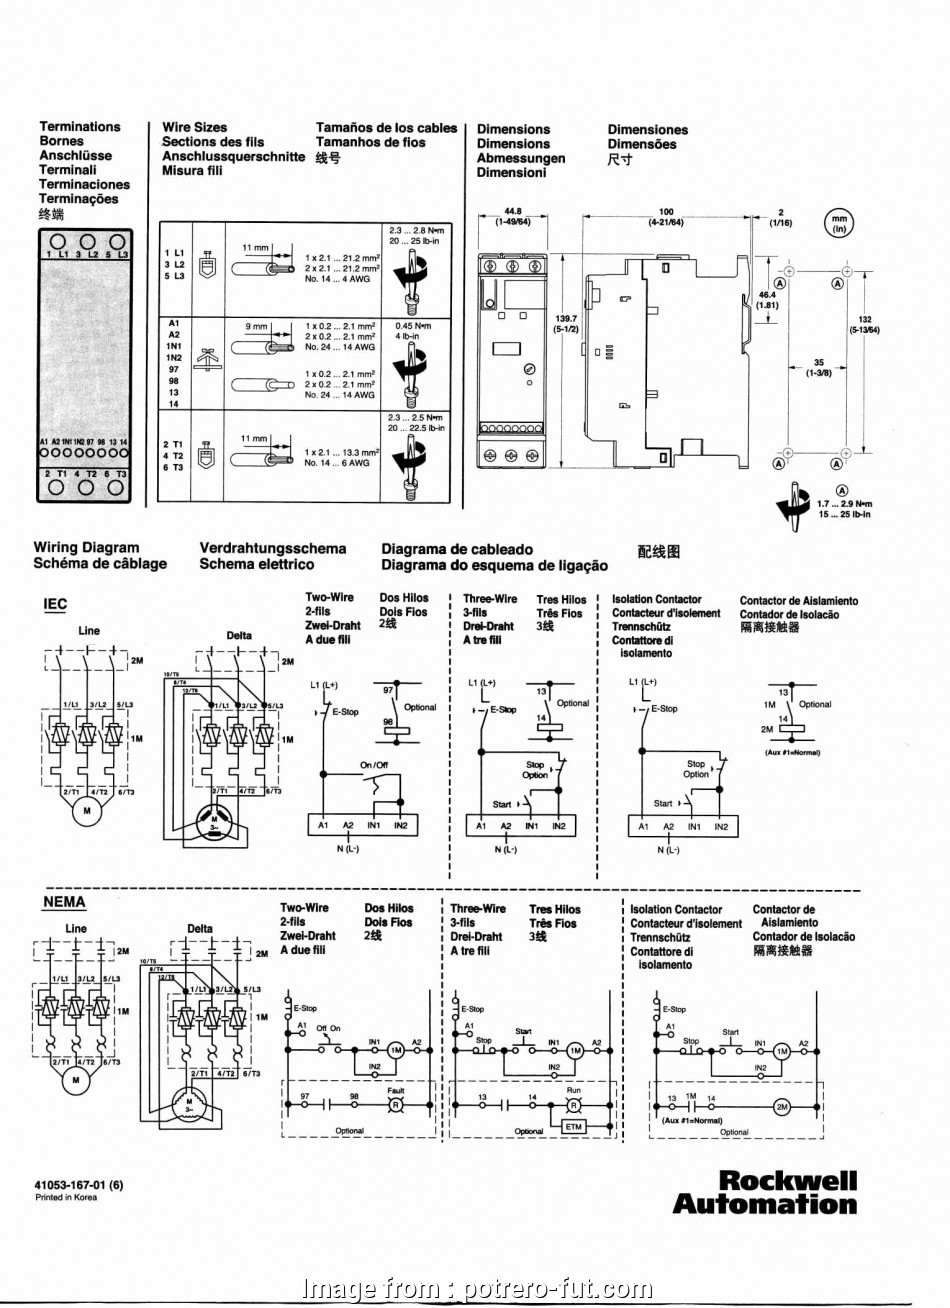 Rj11 To Rj45 Wiring Diagram Brilliant Rj45 To Rj11 Wiring